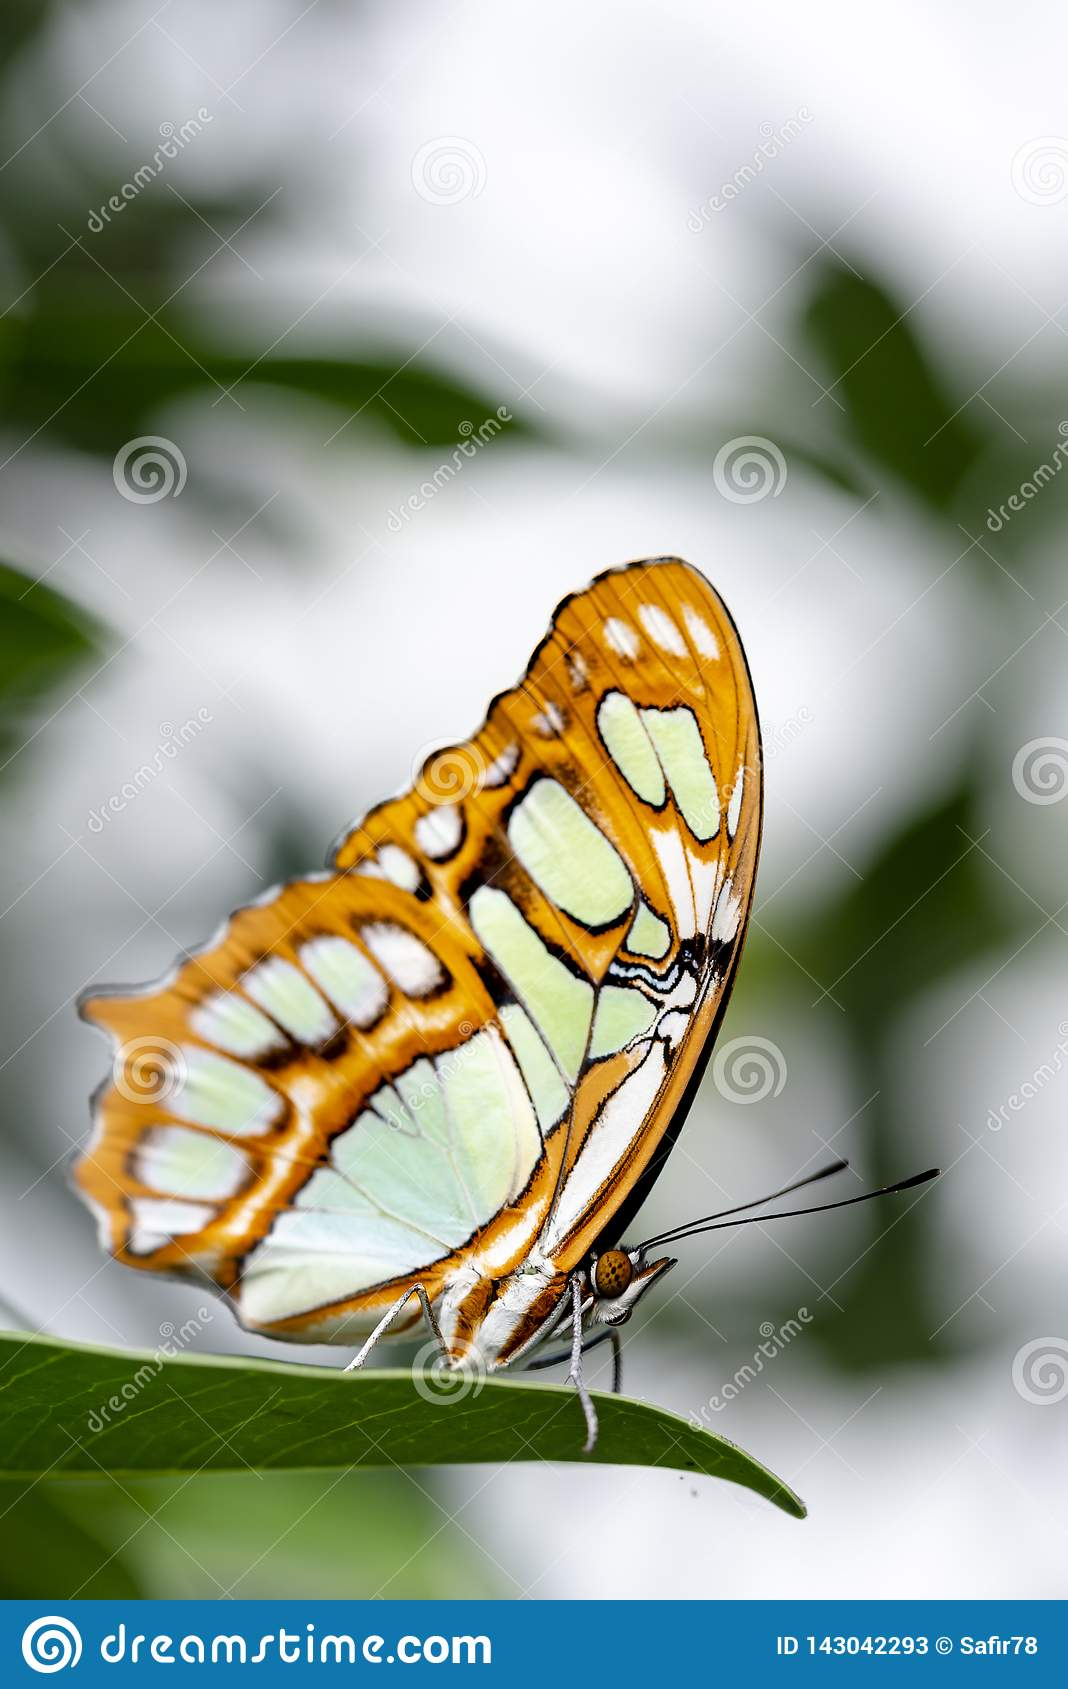 Butterfly in nature habitat